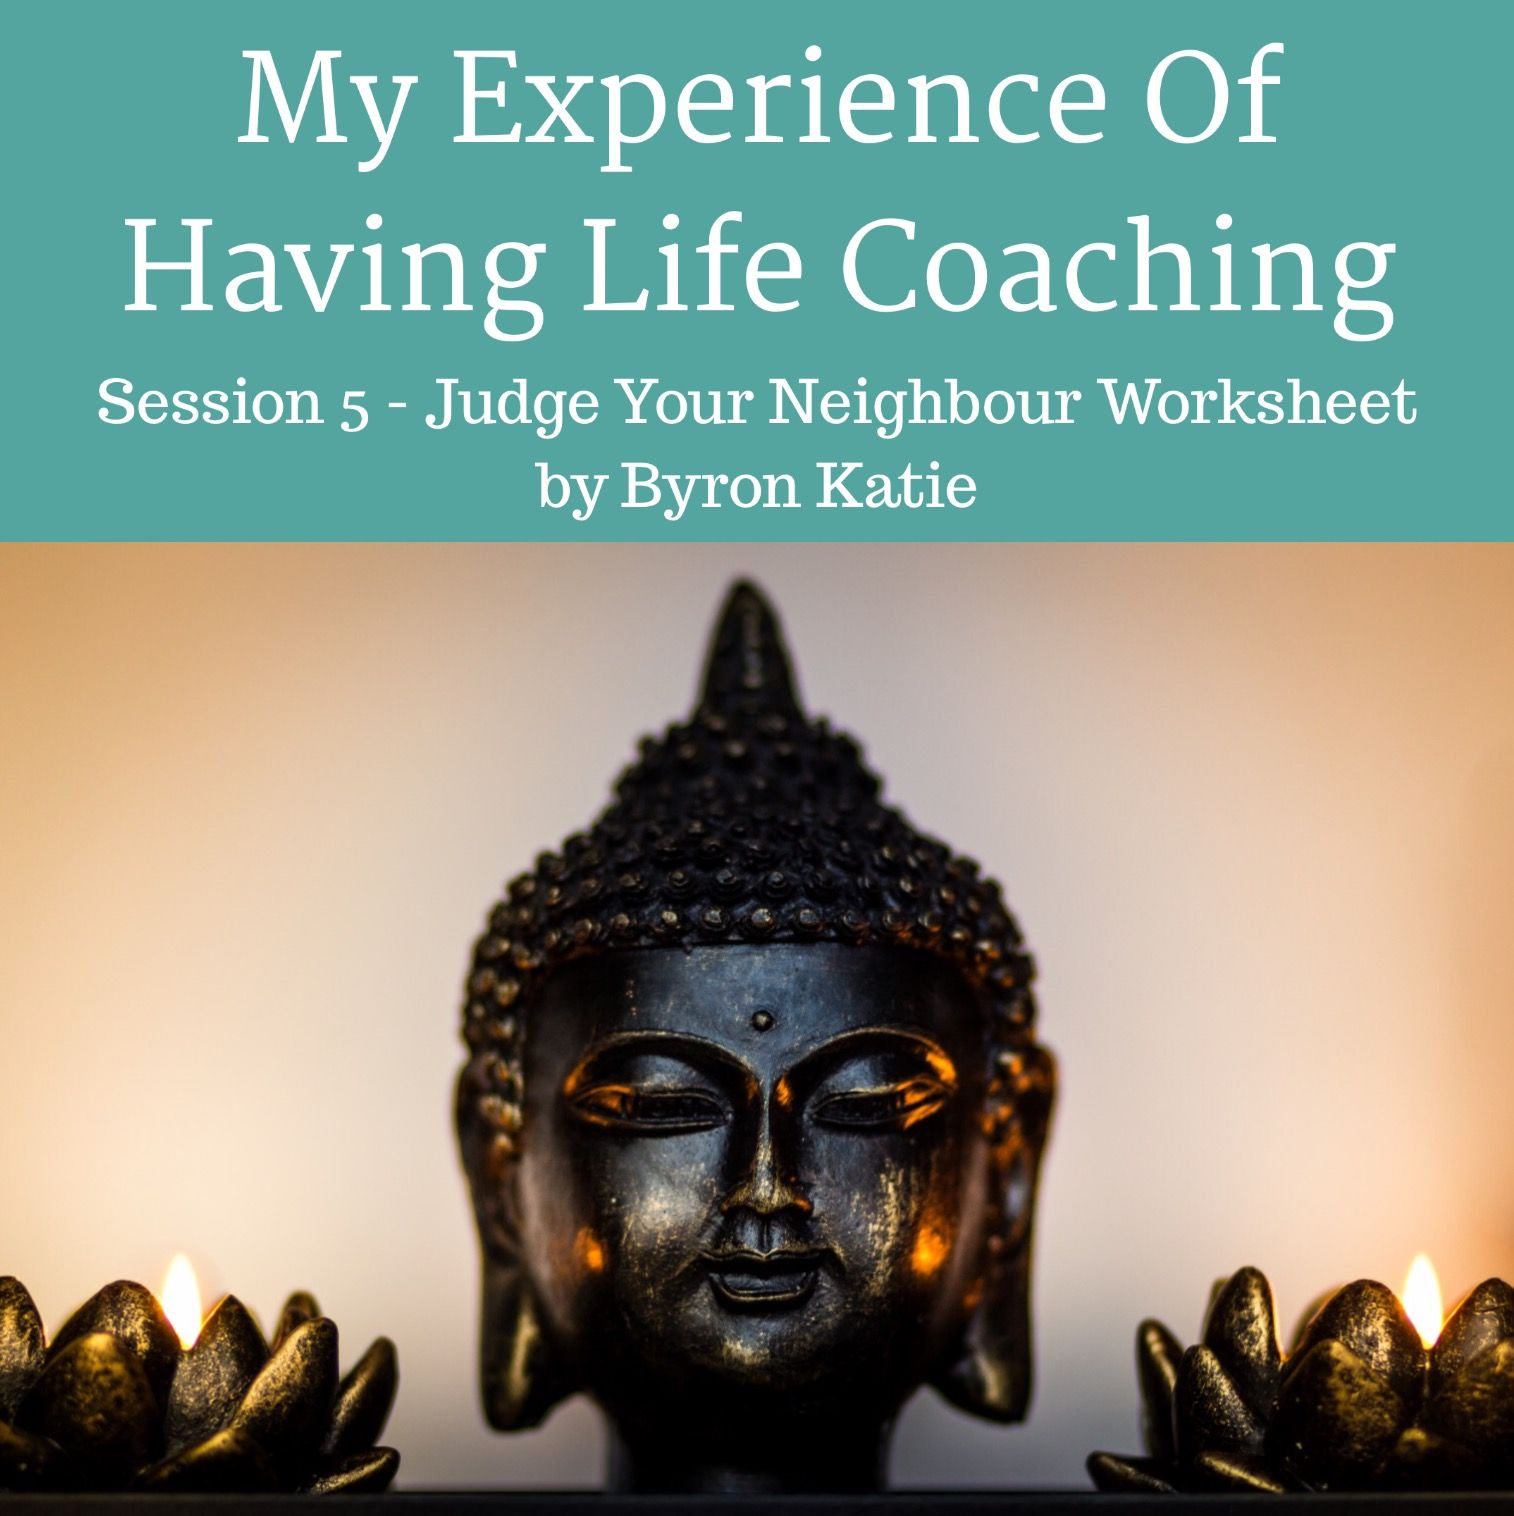 My Experience Of Having Life Coaching Session 5